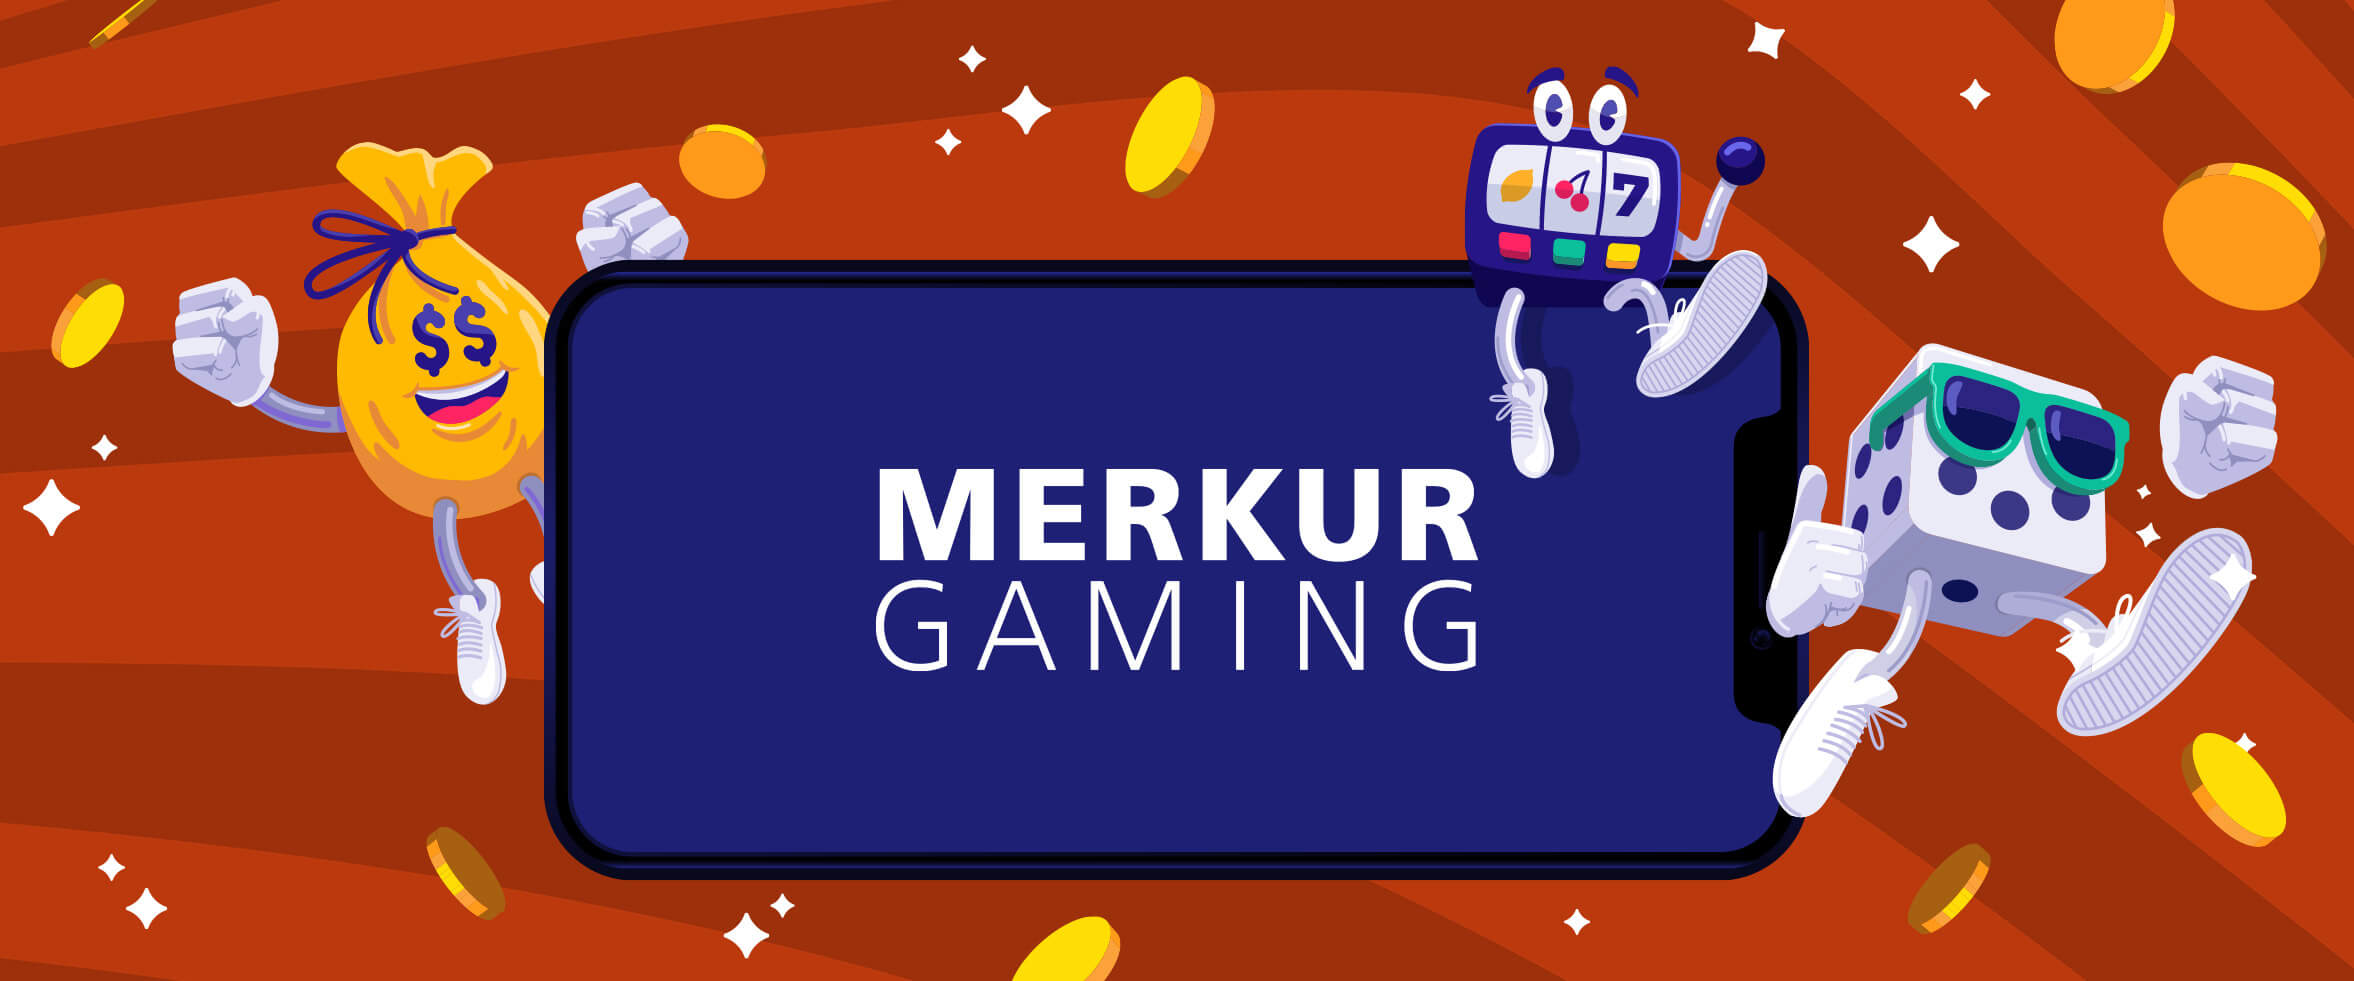 Double Speed for Merkur Gaming Games